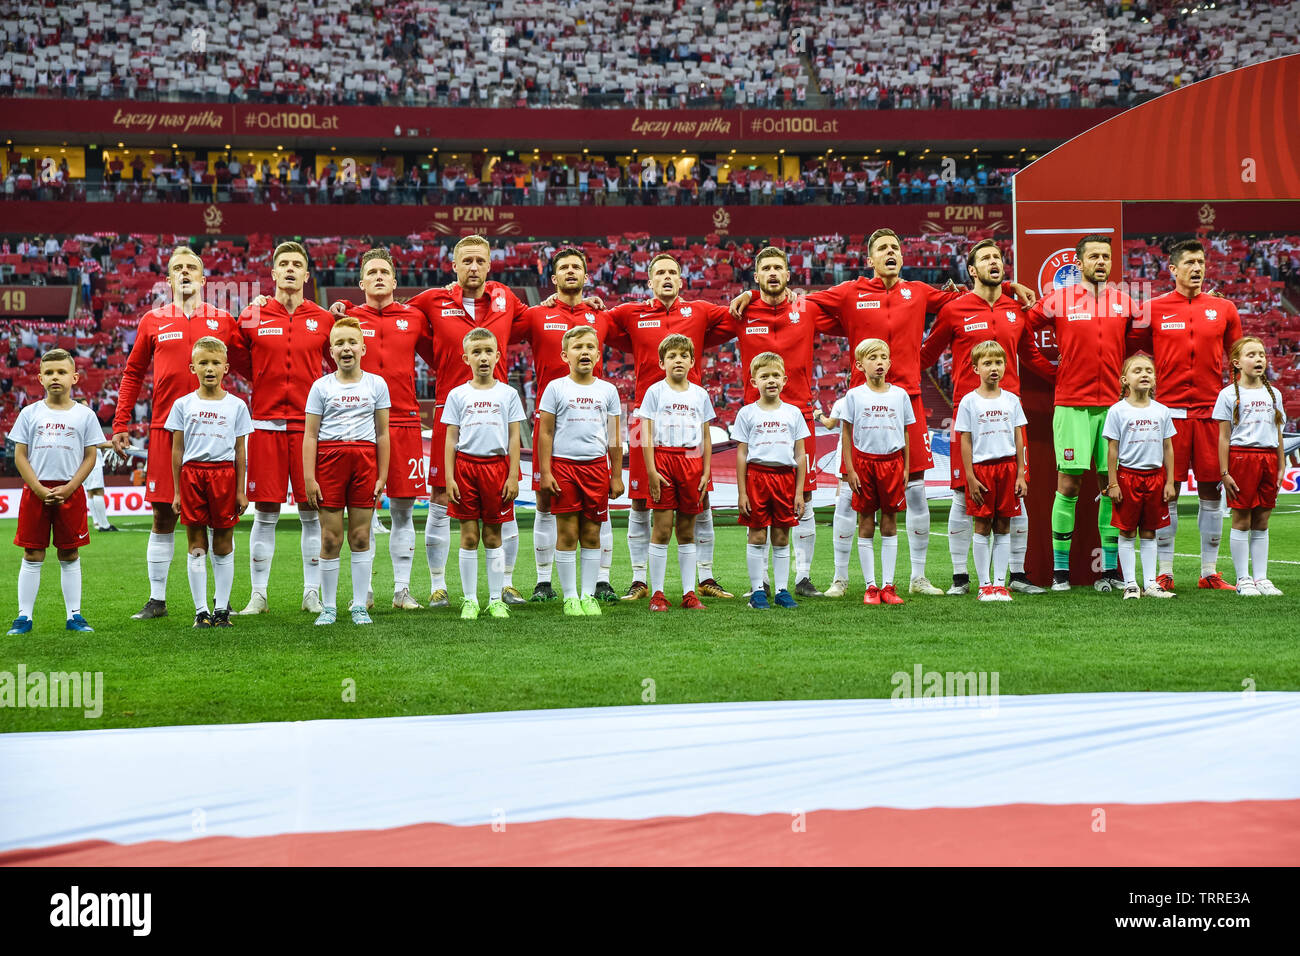 WARSAW, POLAND - JUNE 10, 2019: Qualifications Euro 2020  match Poland - Israel 4:0. Team of Poland during anthem. - Stock Image